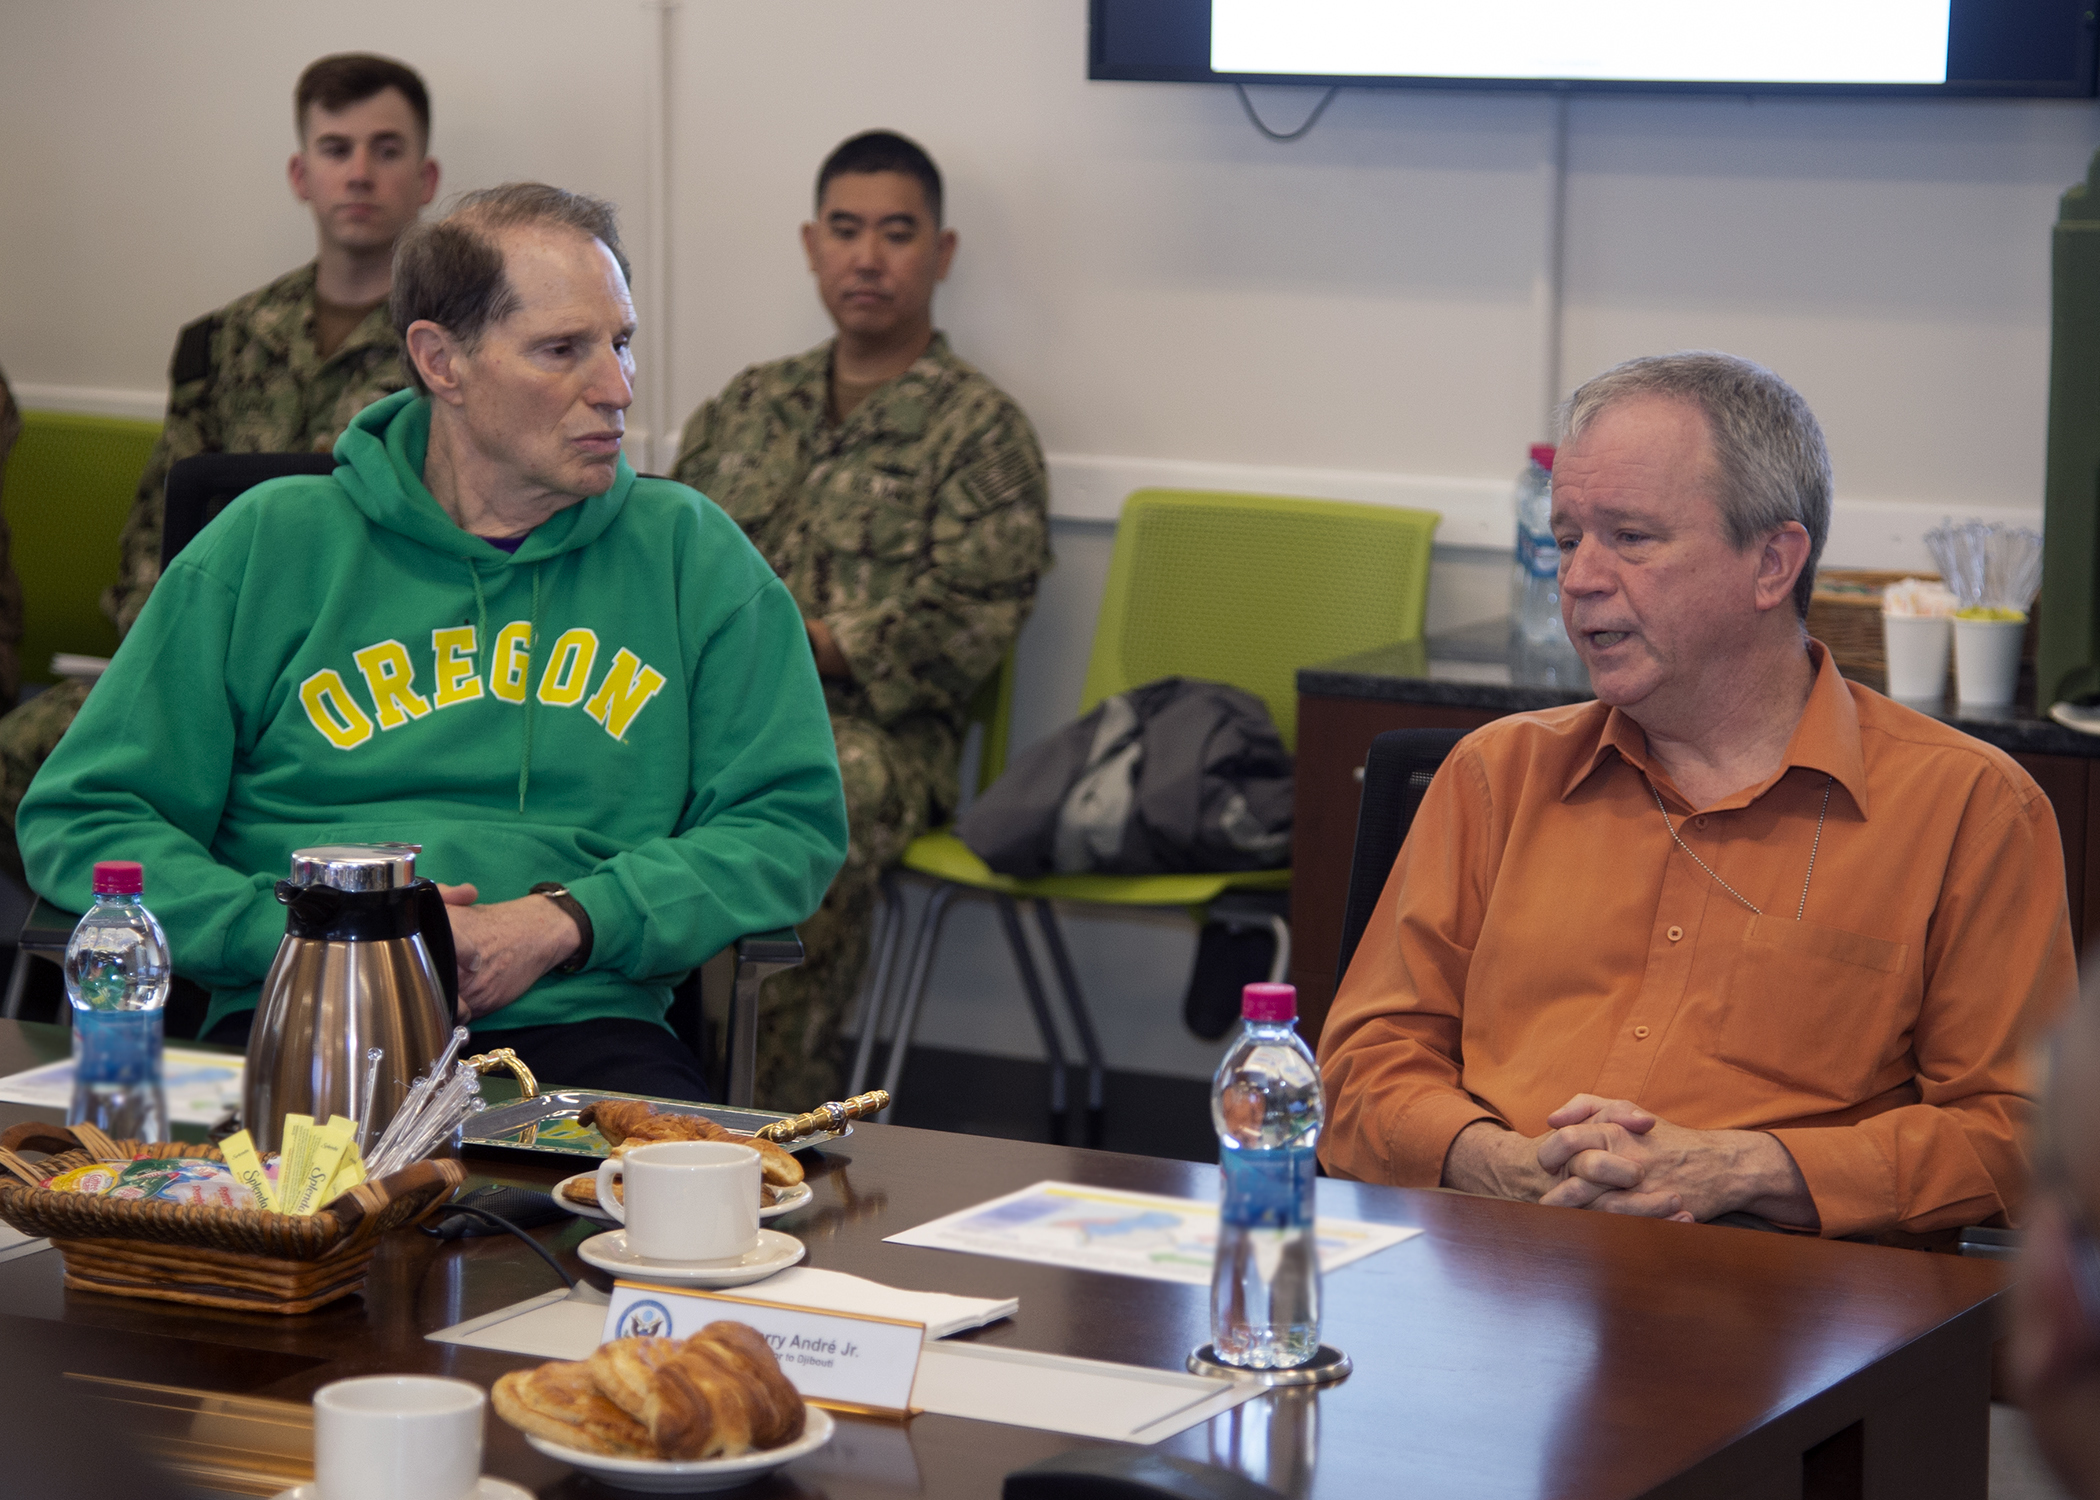 U.S. Sen. Ron Wyden, left, (D-OR) speaks with U.S. Ambassador to Djibouti Larry André, right, during a briefing at Combined Joint Task Force-Horn of Africa, Camp Lemonnier, Djibouti, April 26, 2019. Wyden traveled to Djibouti to visit U.S. forces and embassy officials and to meet with national defense leaders to understand the current posture of readiness and security. (U.S. Navy photo by Mass Communication Specialist 1st Class Nick Scott)